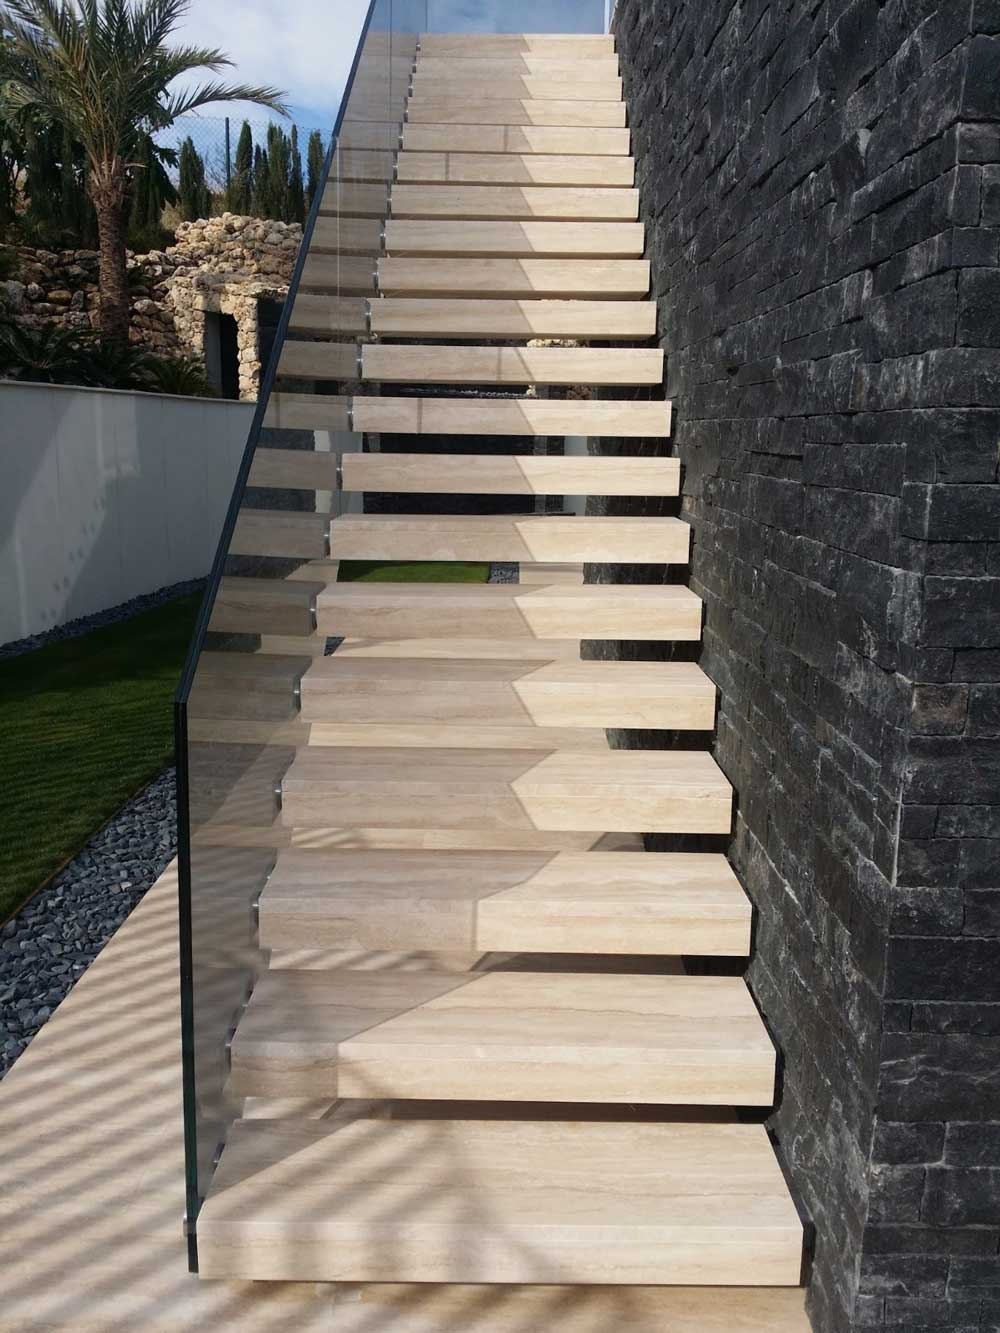 Escalera exterior de Travertino Classico - Travertine Classic exterior staircase